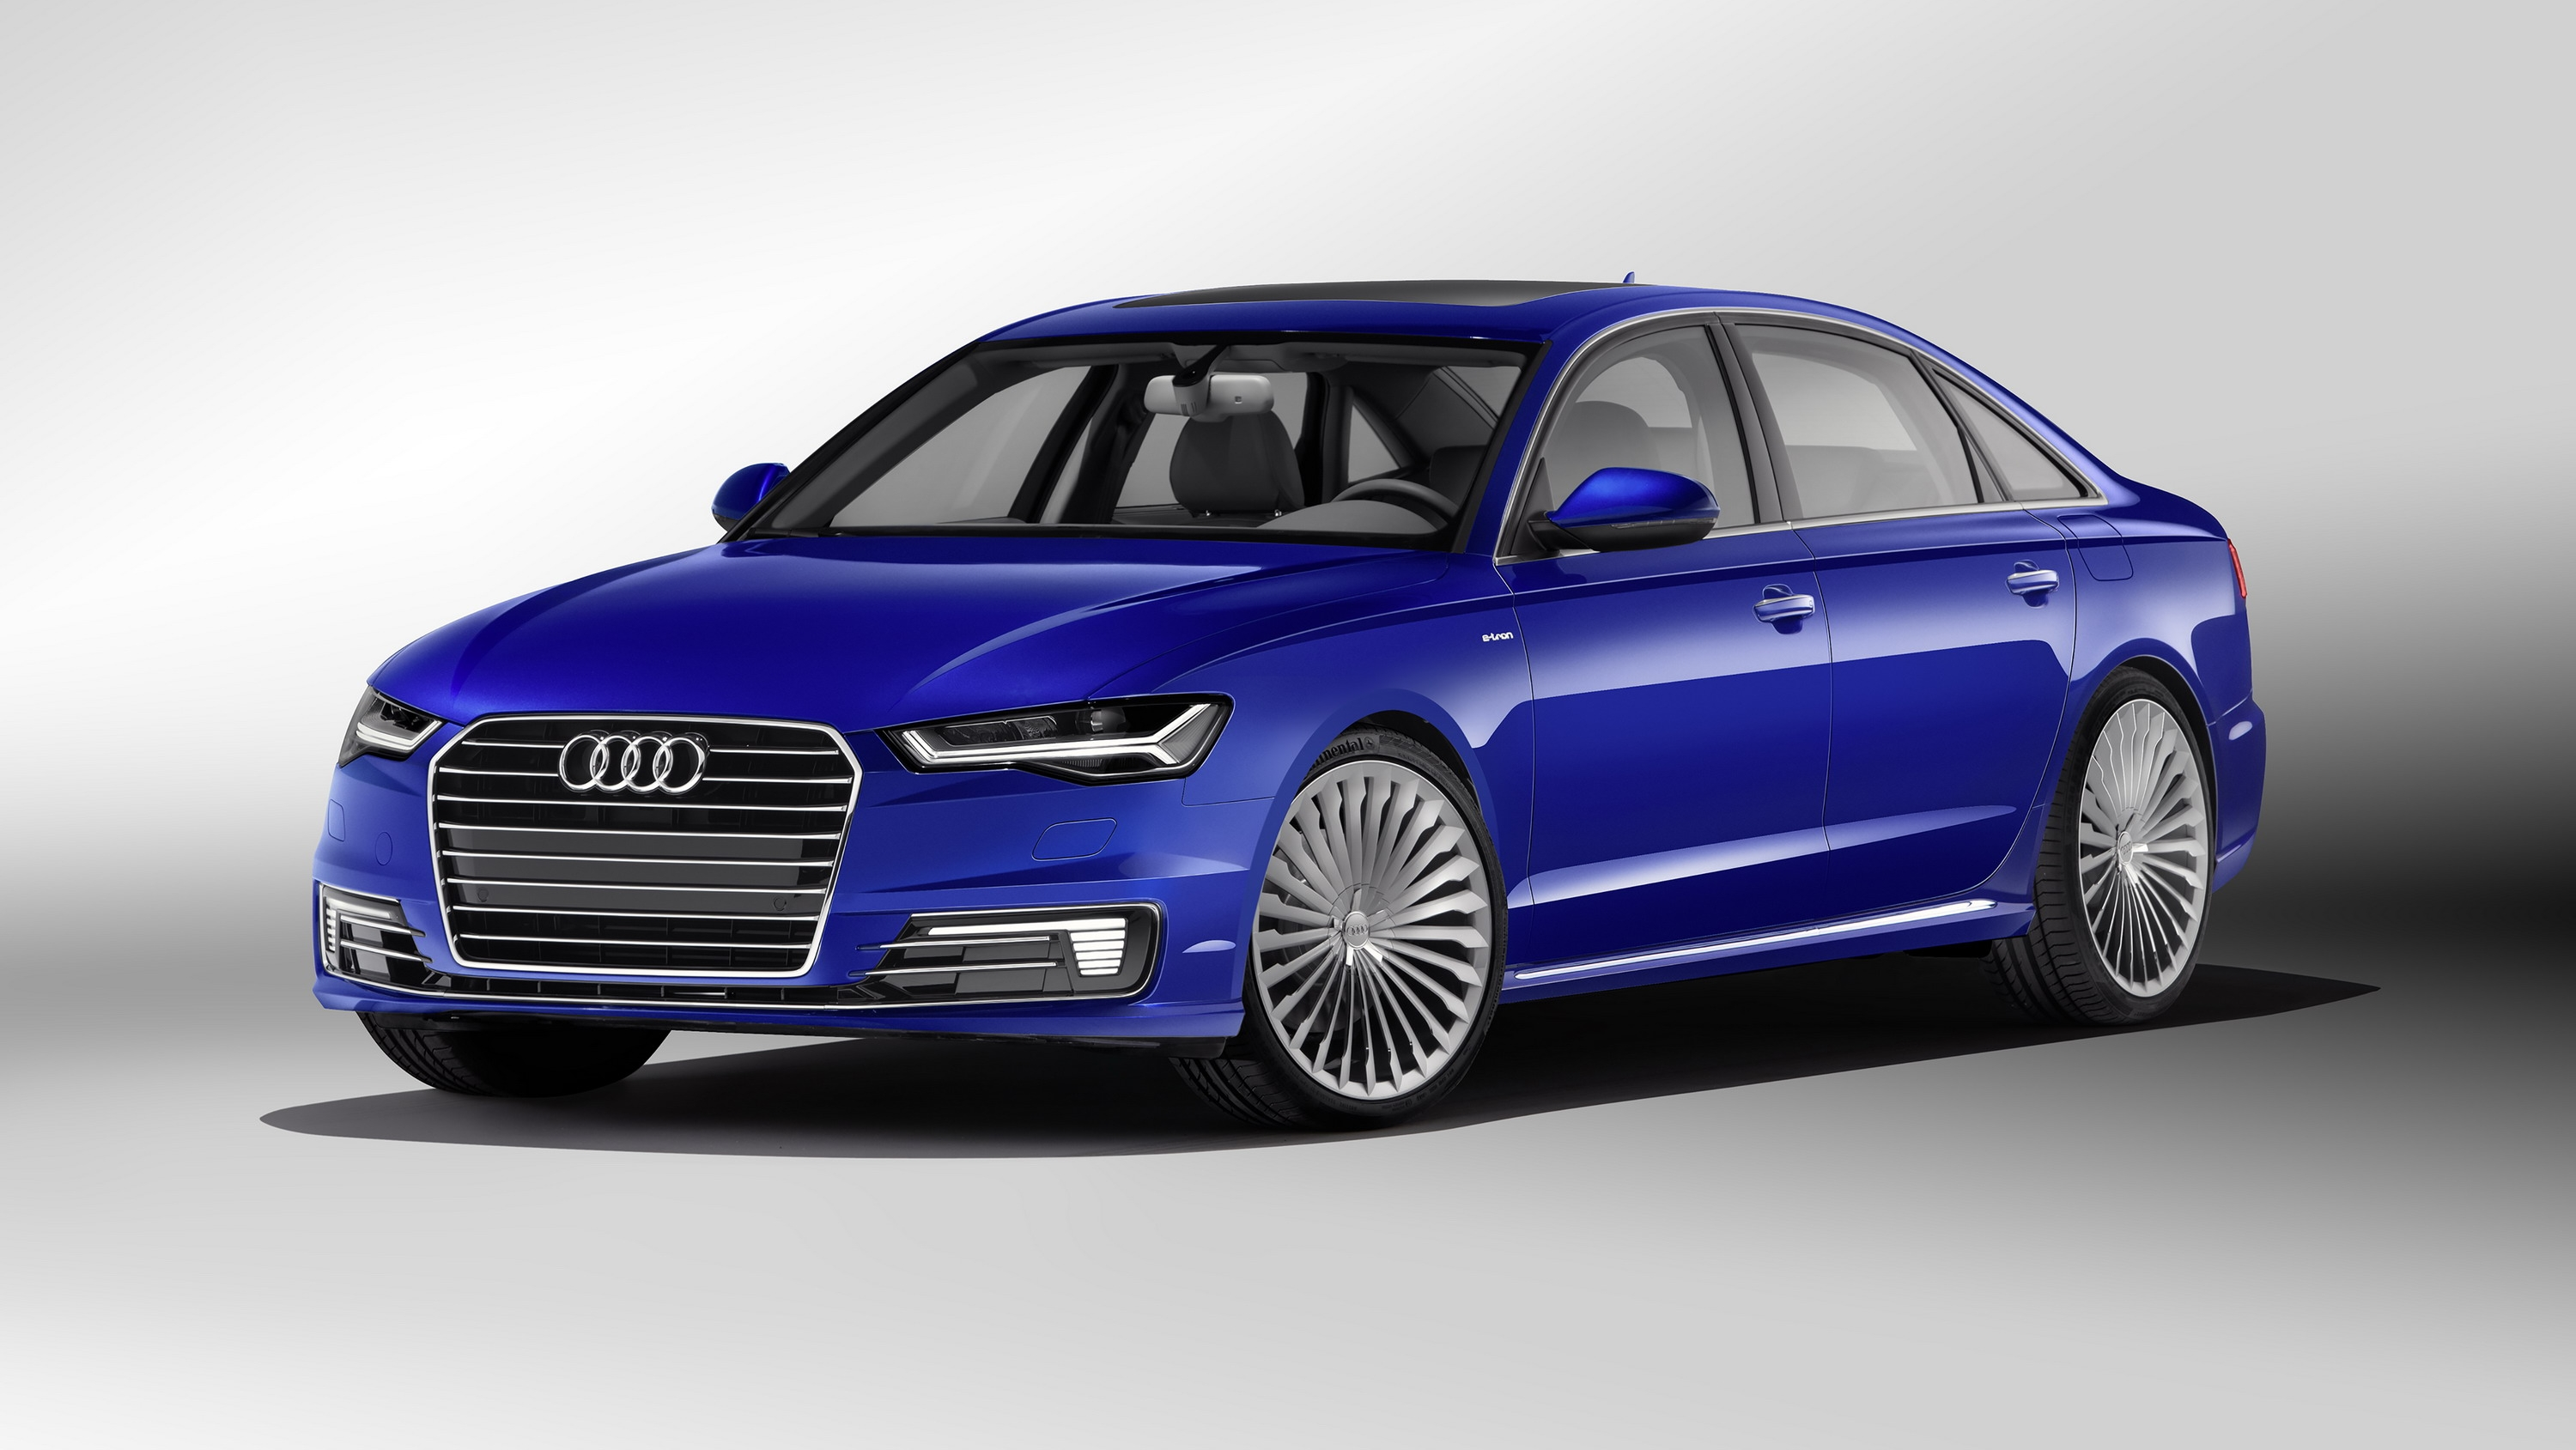 2015 audi a6 l e tron top speed. Black Bedroom Furniture Sets. Home Design Ideas